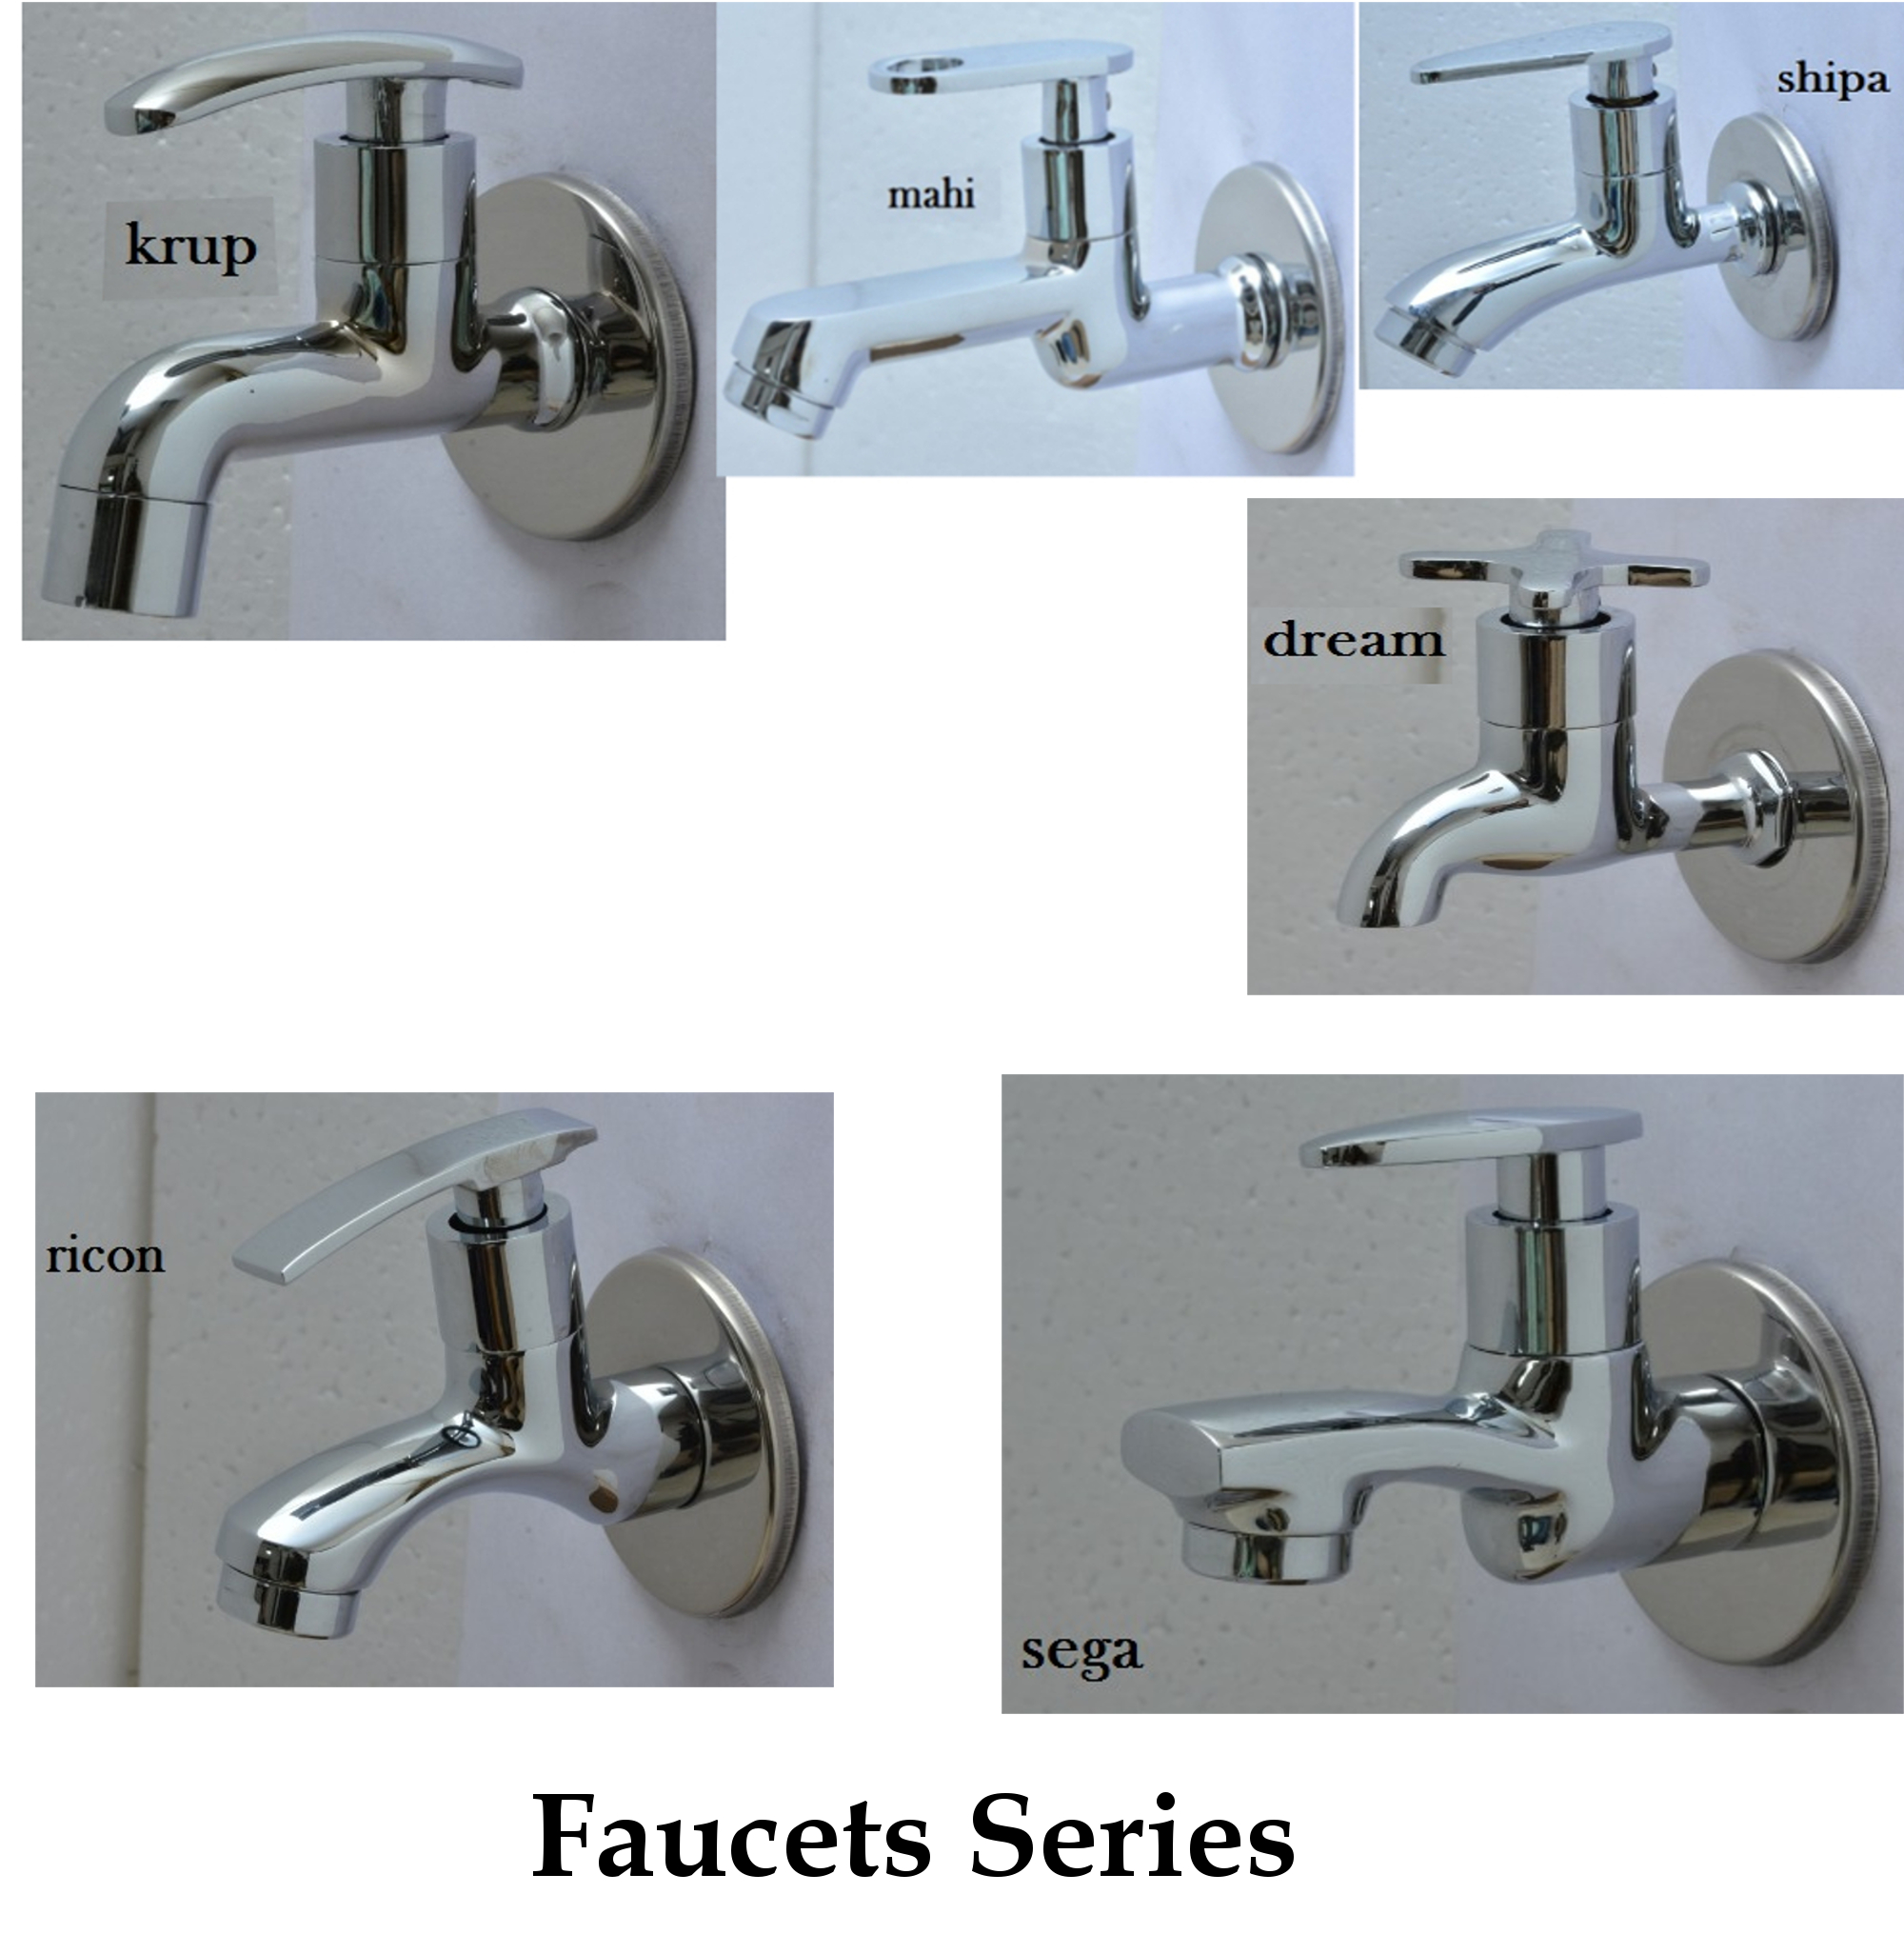 Bathroom Faucets Series